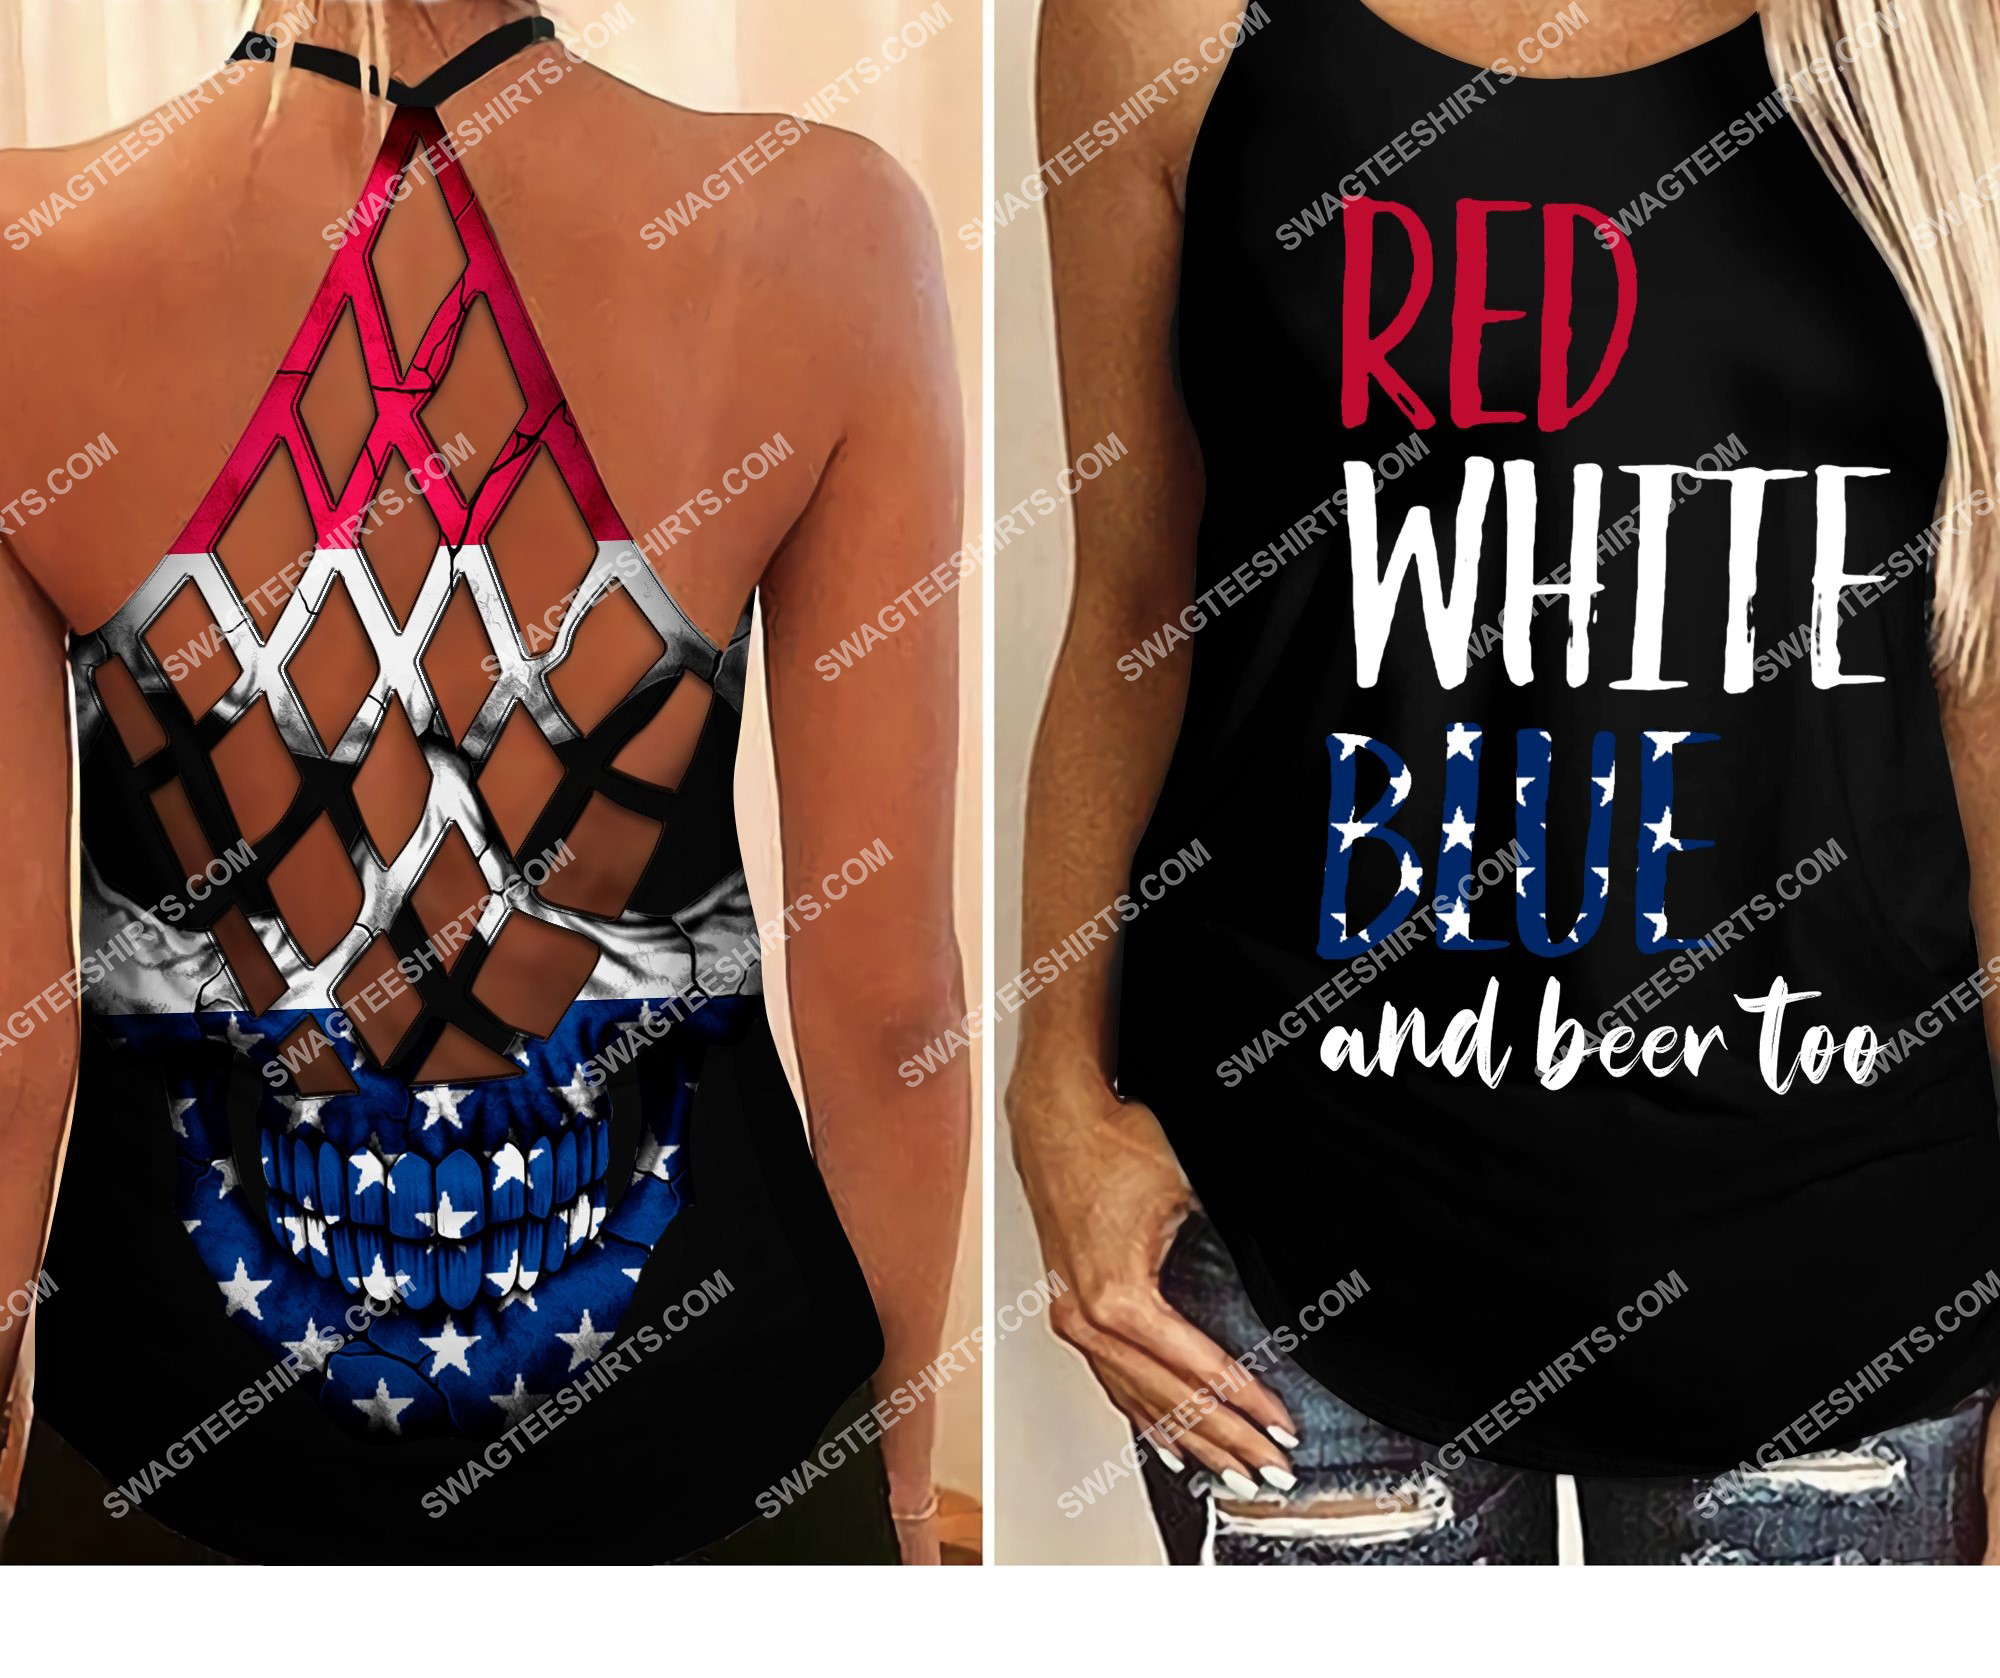 [Top-selling] fourth of july red white blue and beer too all over printed strappy back tank top - maria